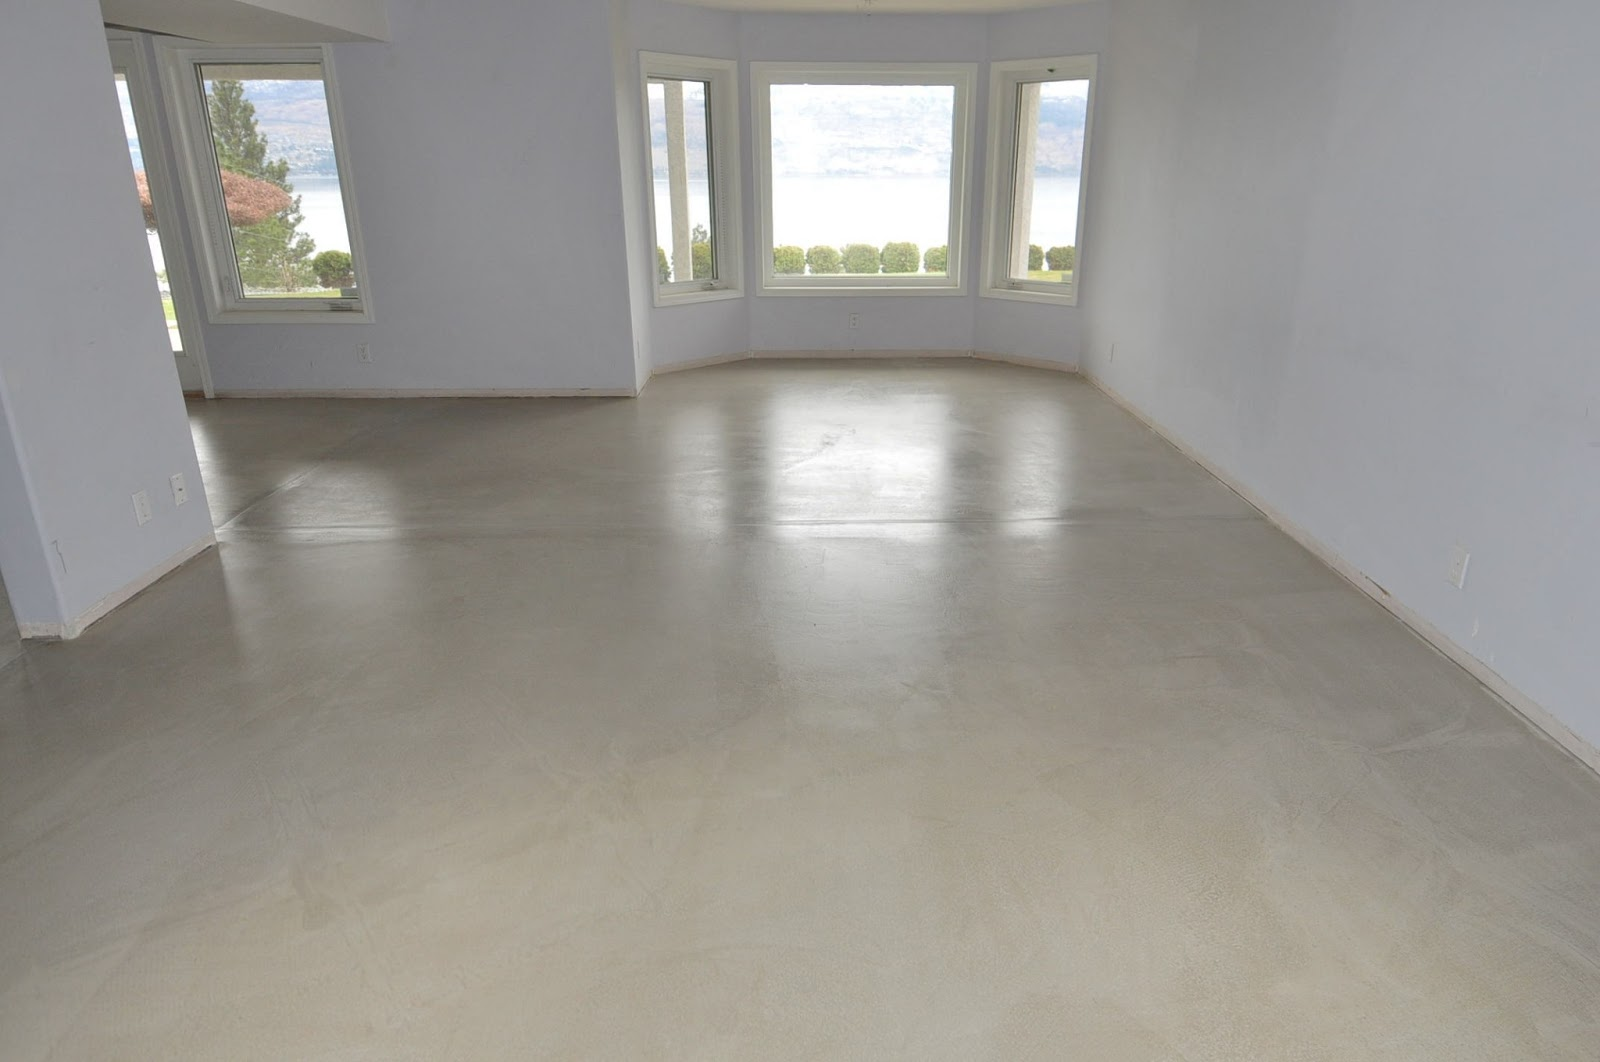 Mode concrete cool and modern concrete floors for Modern flooring ideas